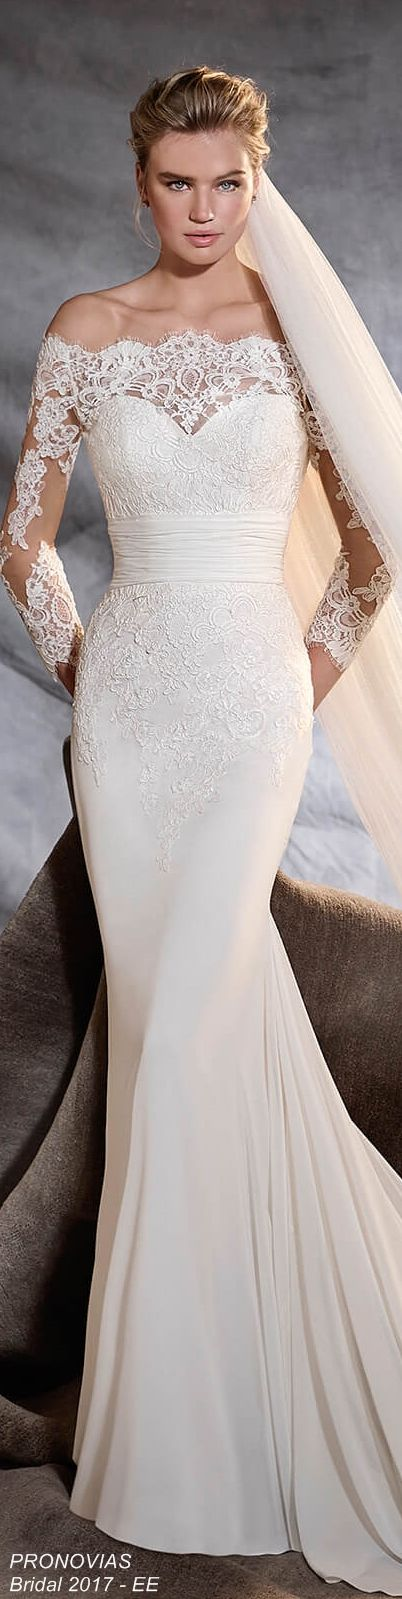 //PRONOVIAS Bridal Collection 2017 - EE